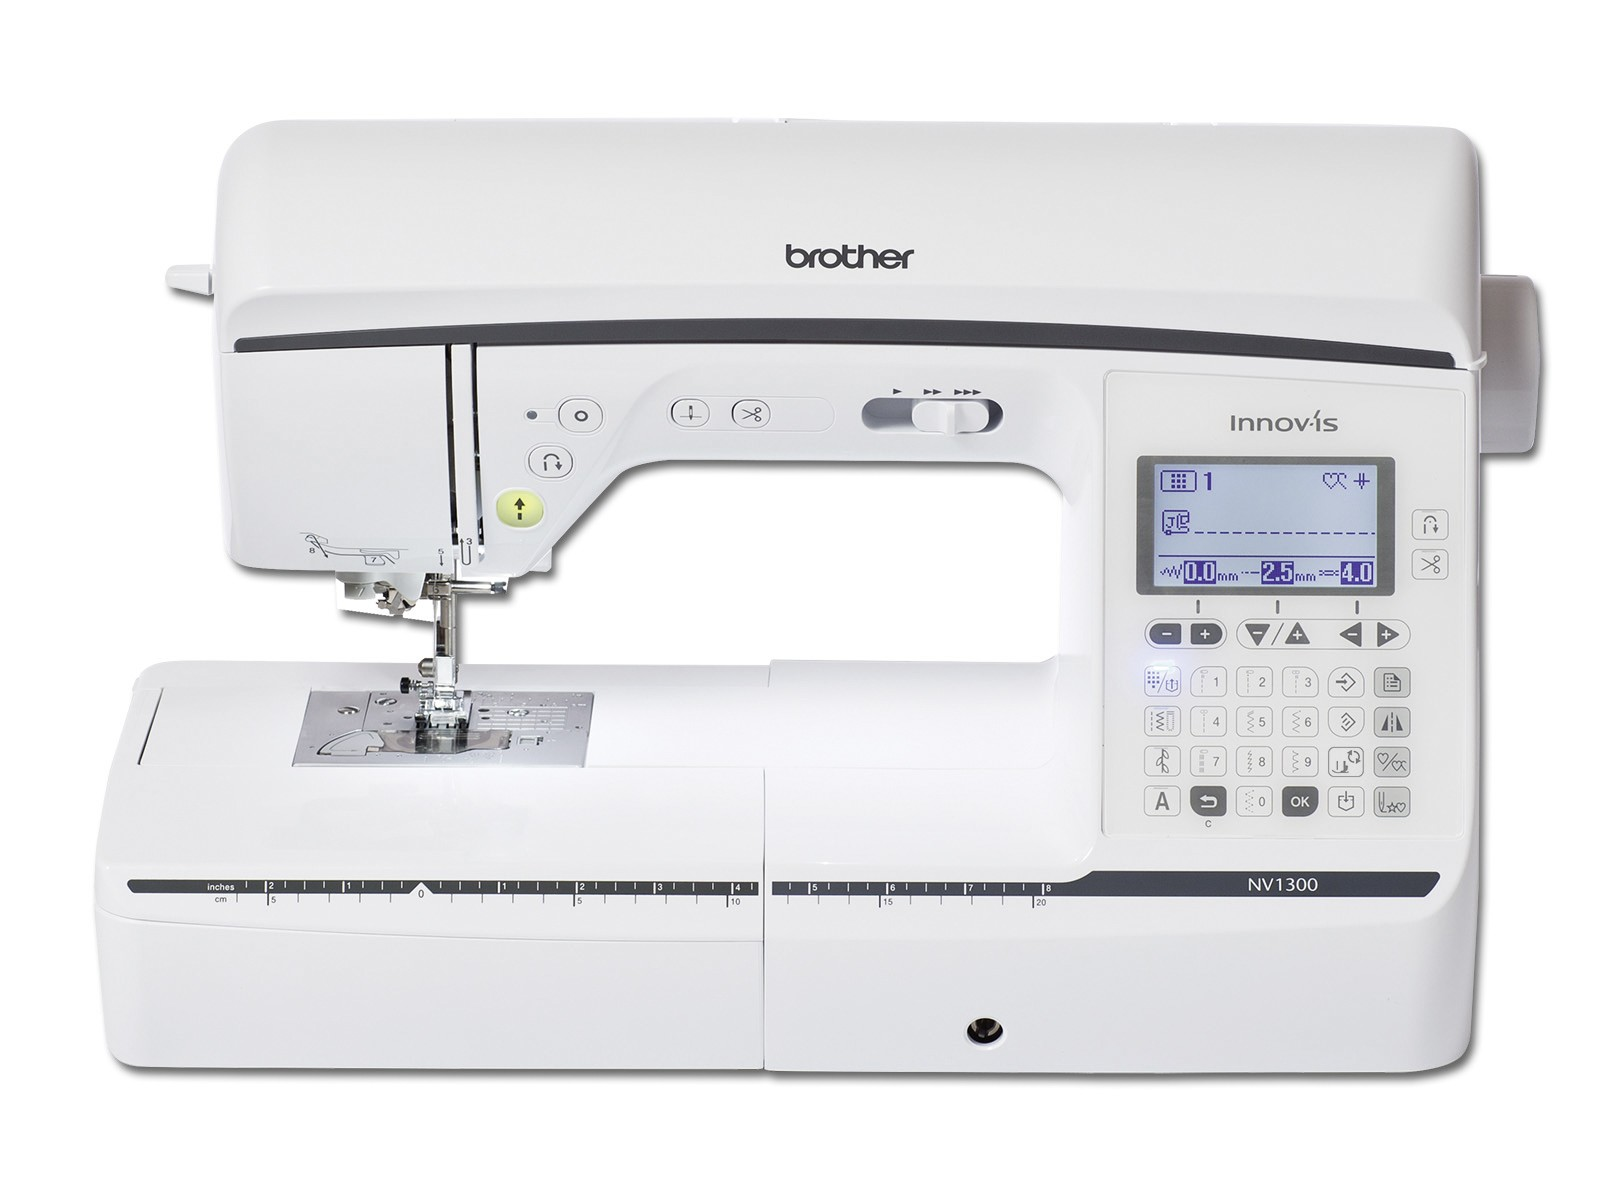 QKF2UK Brother Creative Quilting Kit for NV1100 NV1300 Sewing Machines